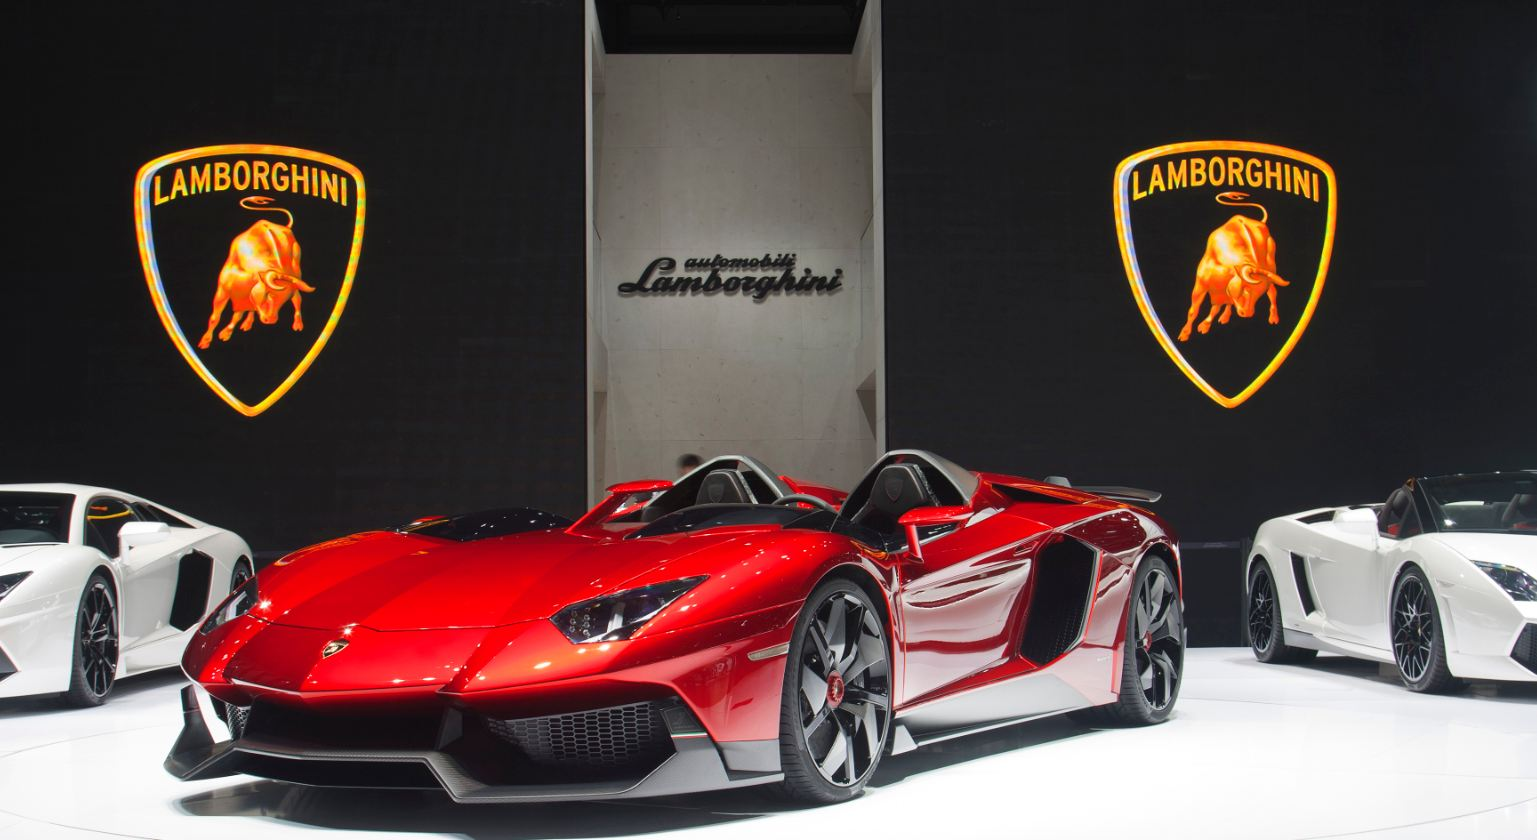 lamborghini aventador j unveil at geneva mydrive media. Black Bedroom Furniture Sets. Home Design Ideas